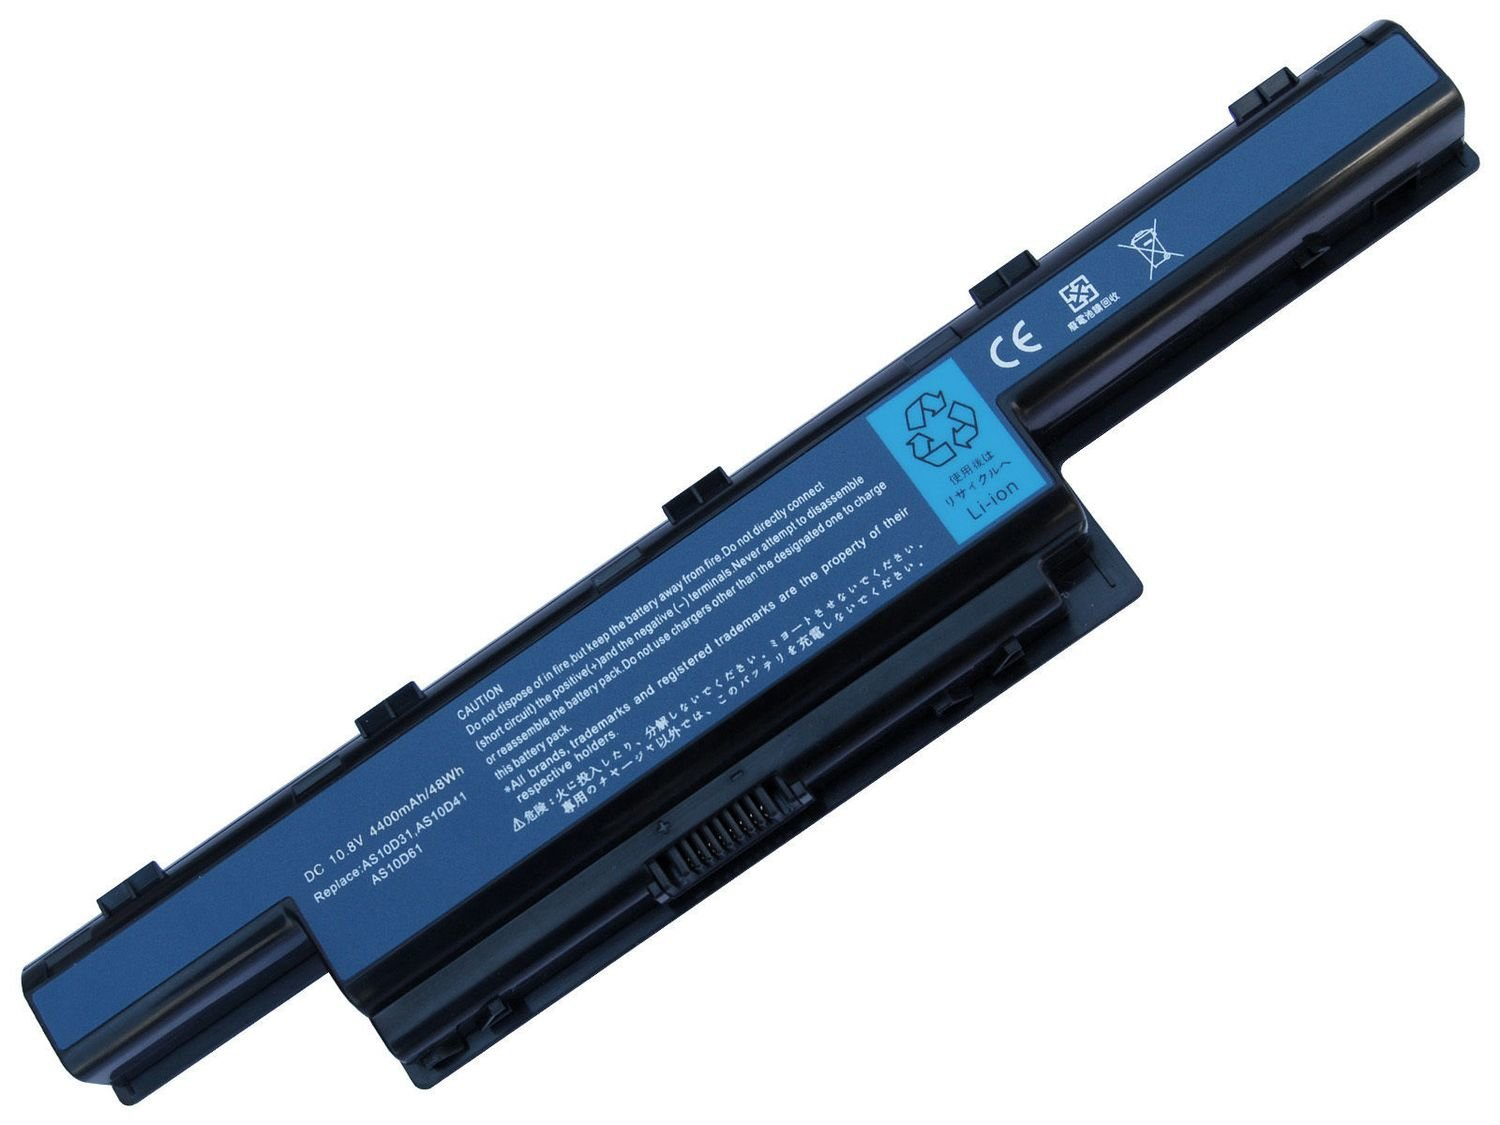 Acer Aspire 4755 4771 4771G compatible laptop battery